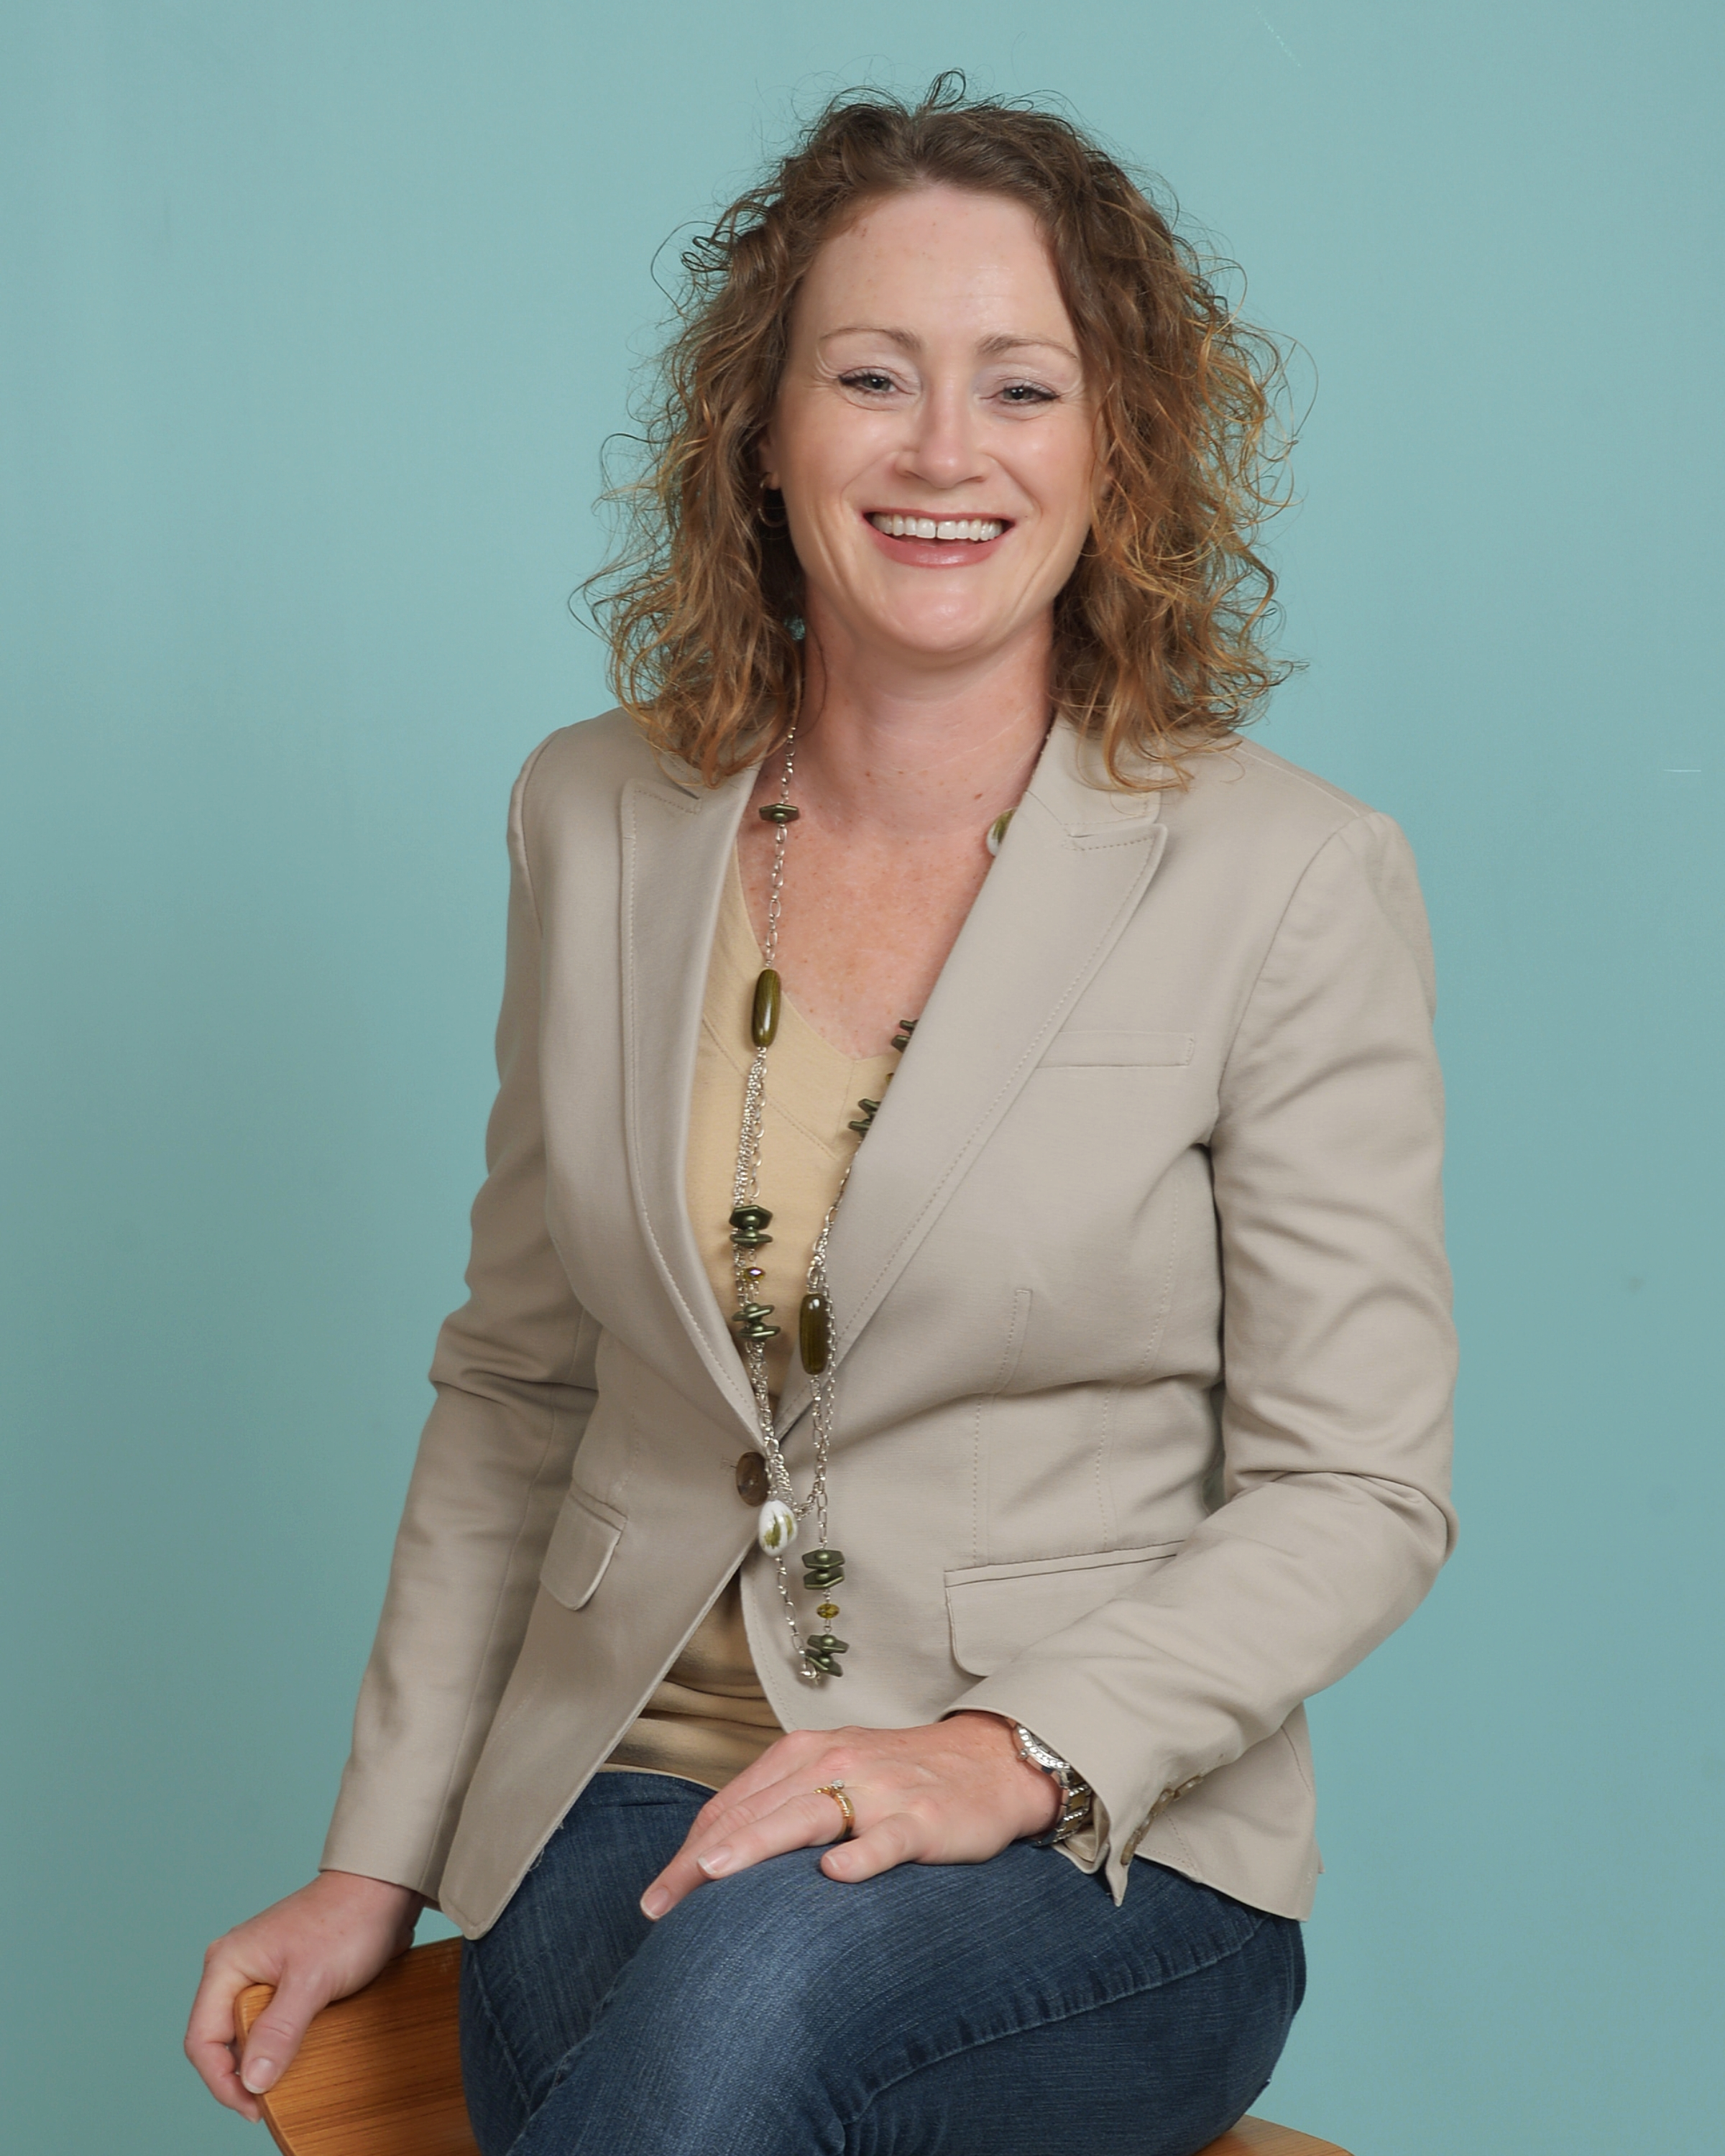 Mandy Clark, Founder and President of Optimizing You, Inc.